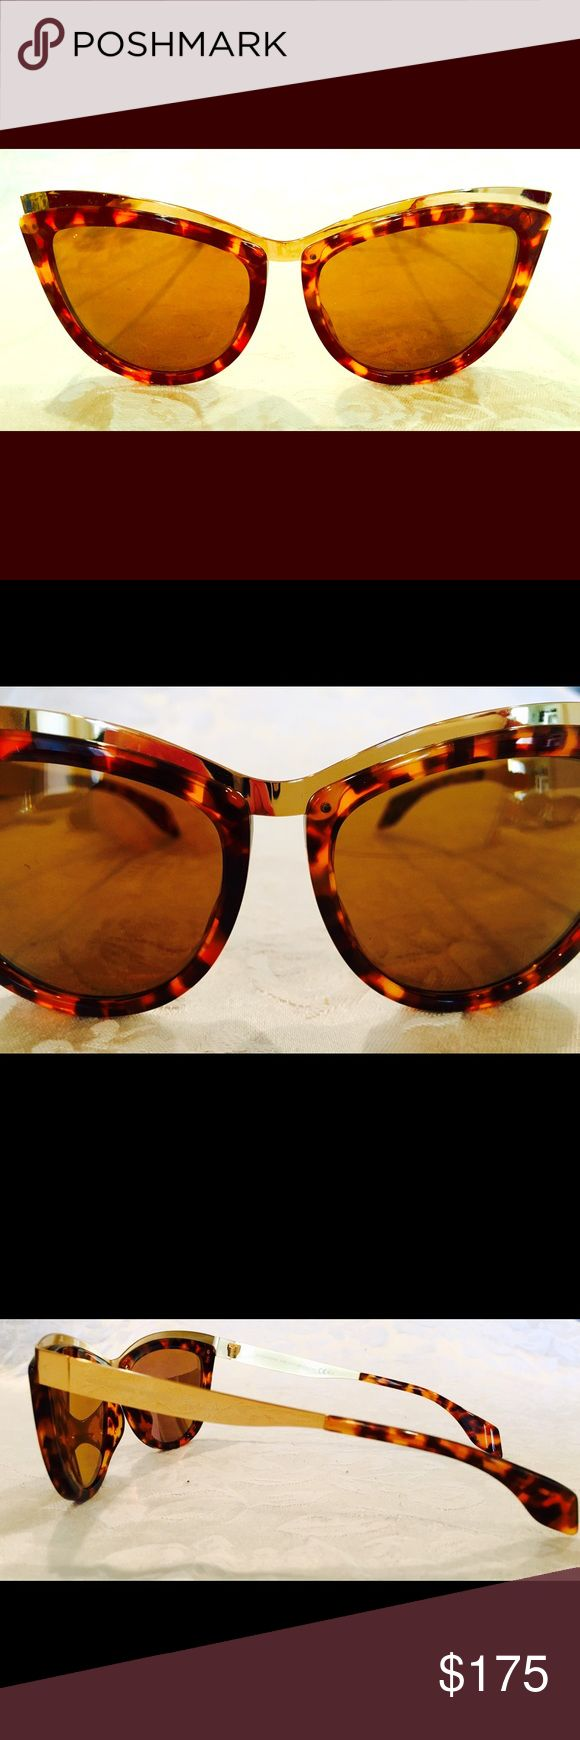 Alexander McQueen women's sunglasses...NEW!!! Tortoiseshell and bright gold hardware frames and arms. Very unique pair of cat-eye style Alexander McQueen sunglasses. High fashion and perfectly dramatic shades.💃🏻 Alexander McQueen Accessories Sunglasses